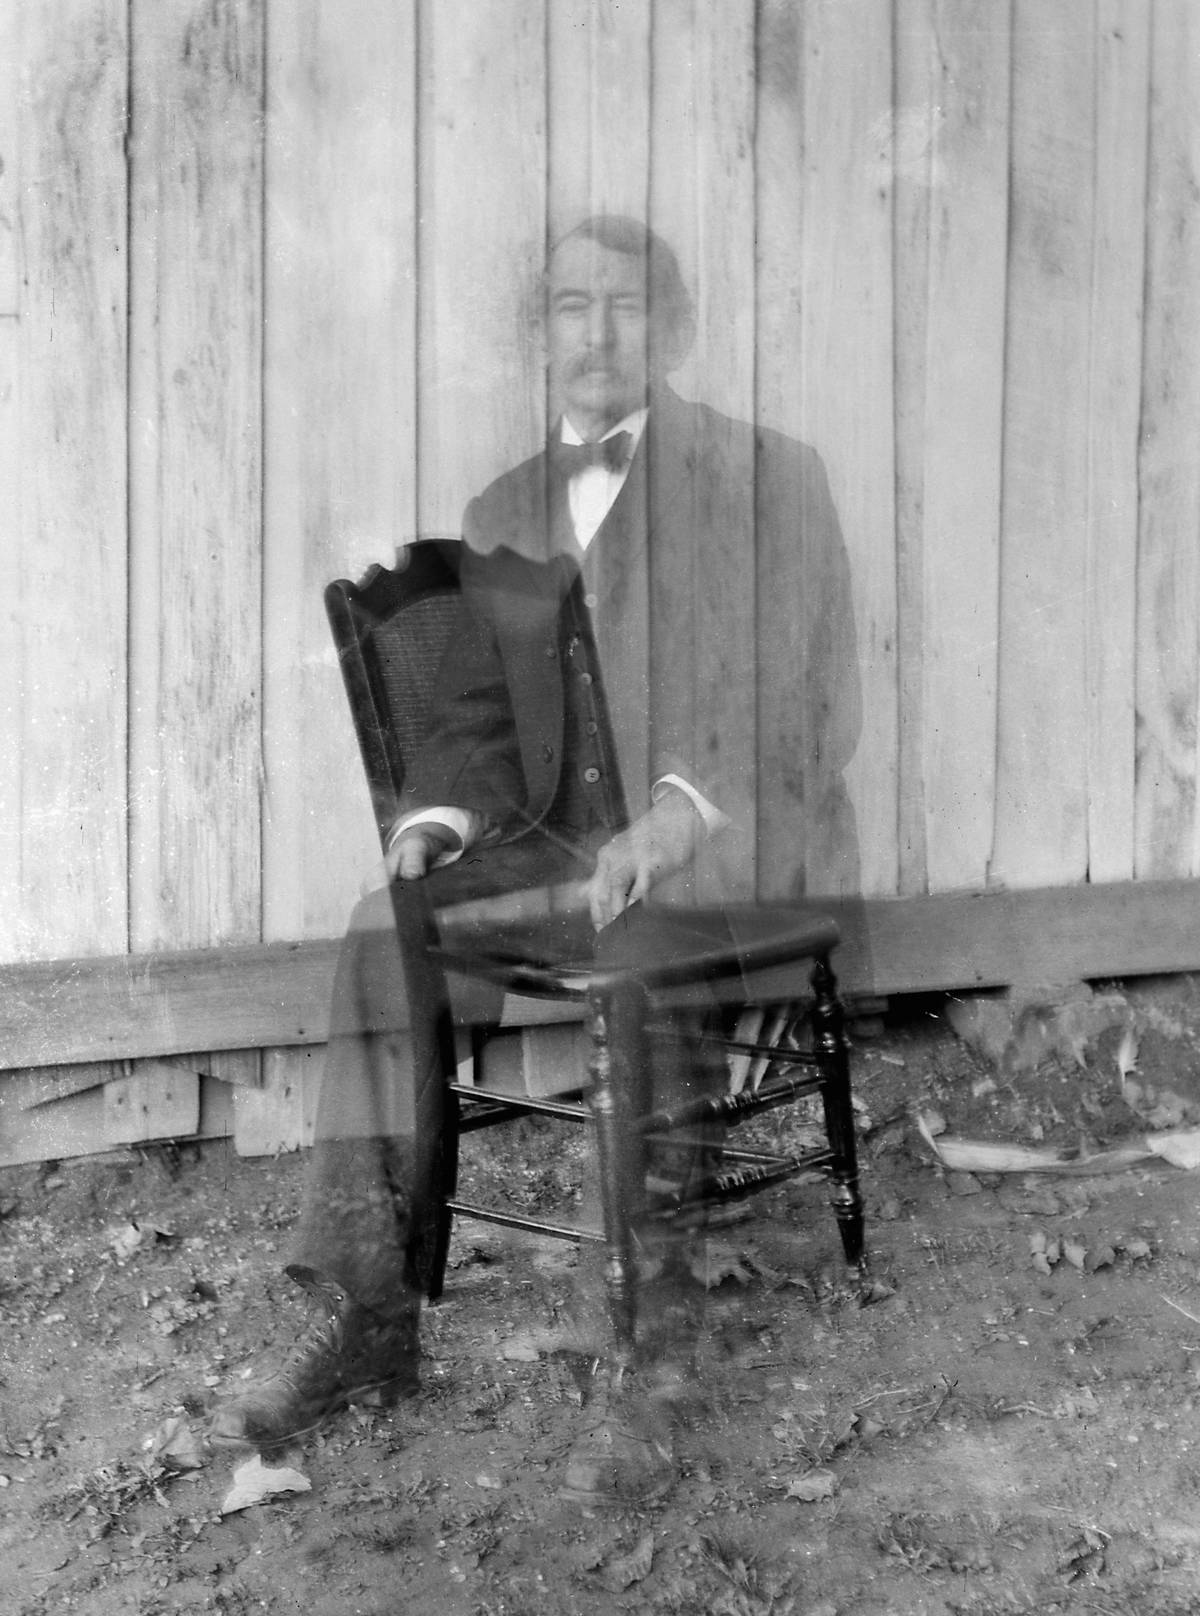 Double exposure of a man sitting on a chair making it look like he's a ghost from 1900